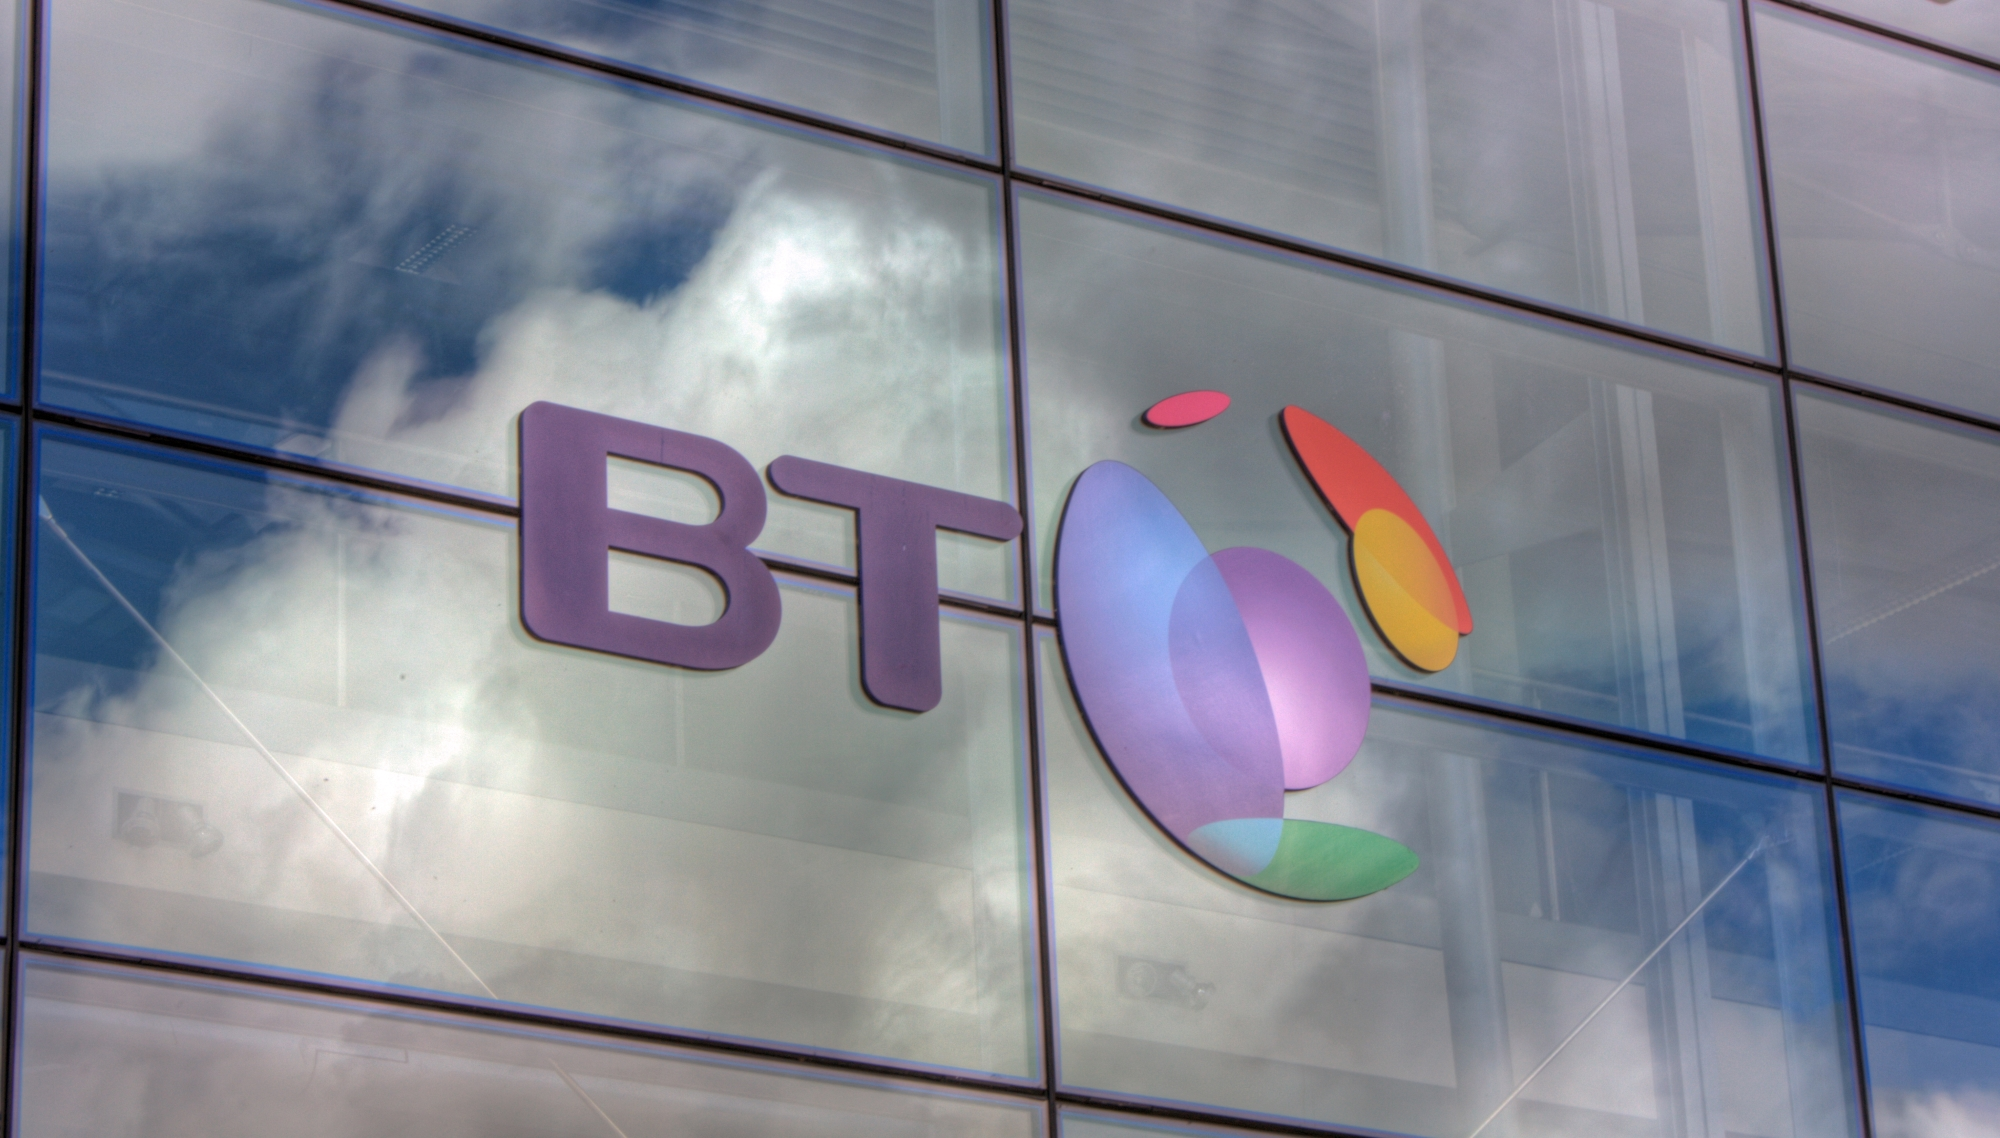 BT's MNO Acquisition Talks: Should It Buy EE or O2?